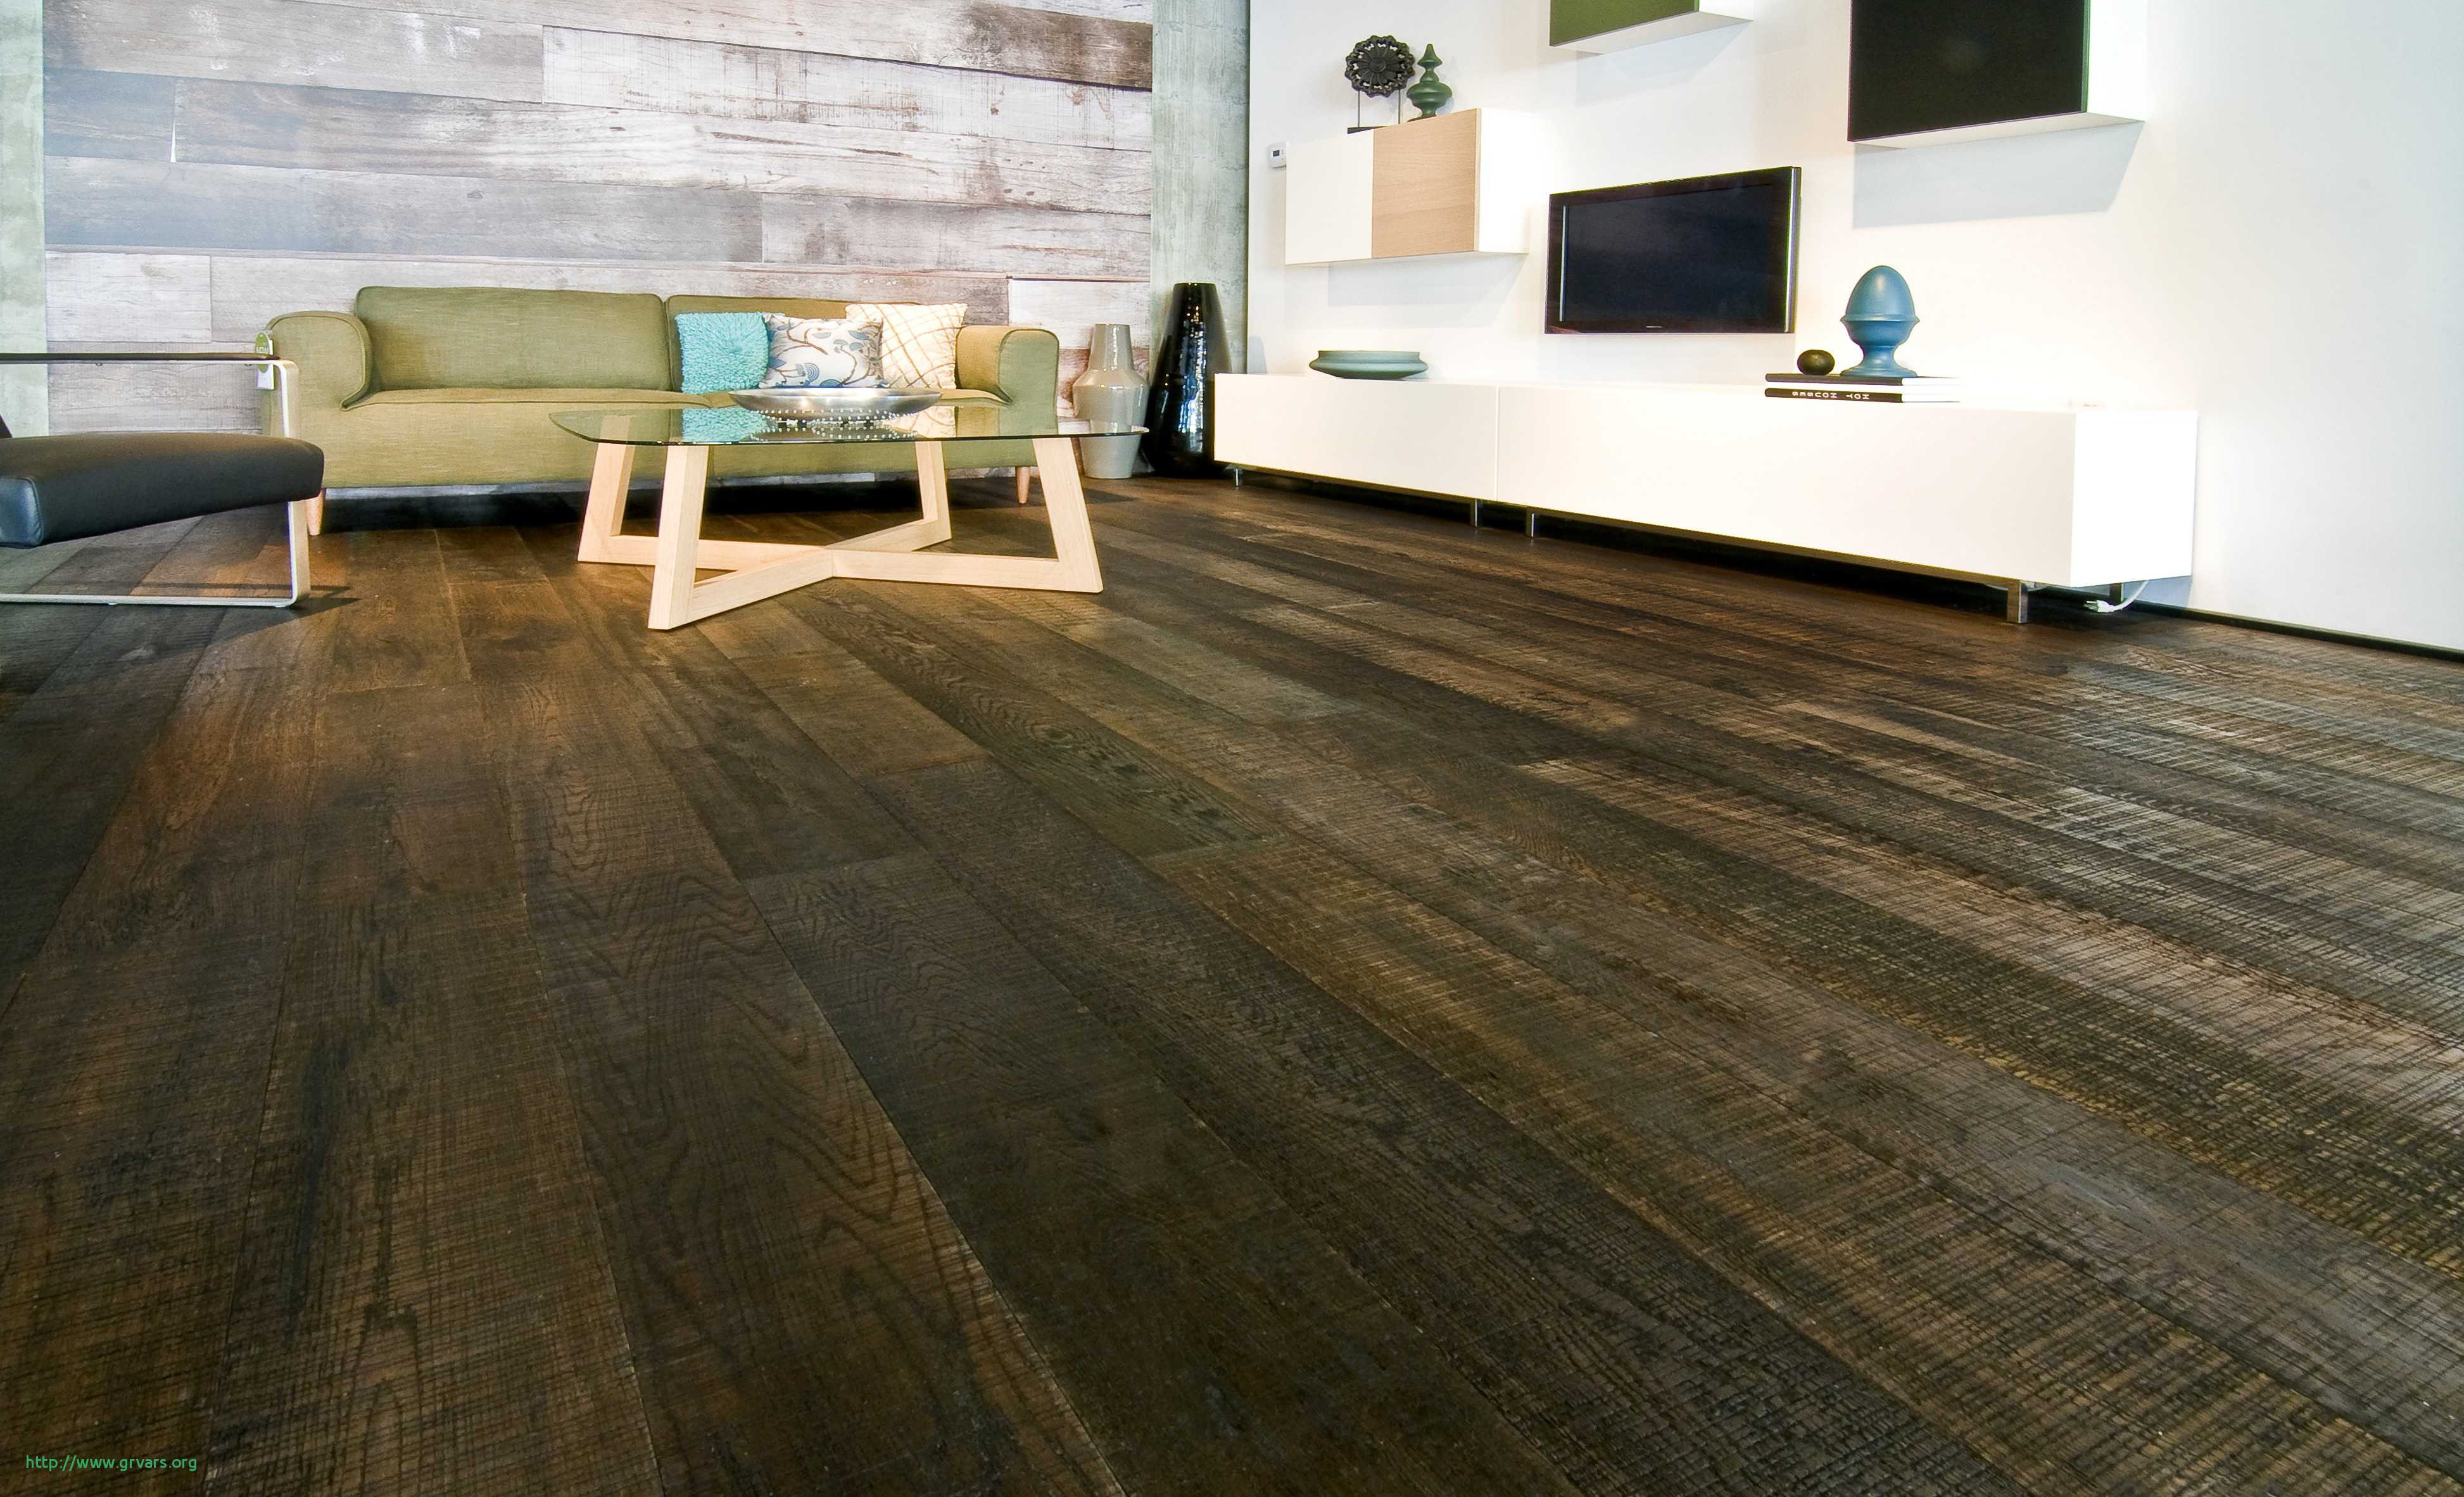 hardwood flooring prices canada of 24 impressionnant most affordable hardwood floors ideas blog throughout full size of bedroom engaging discount hardwood flooring 5 where to buy inspirational 0d grace place